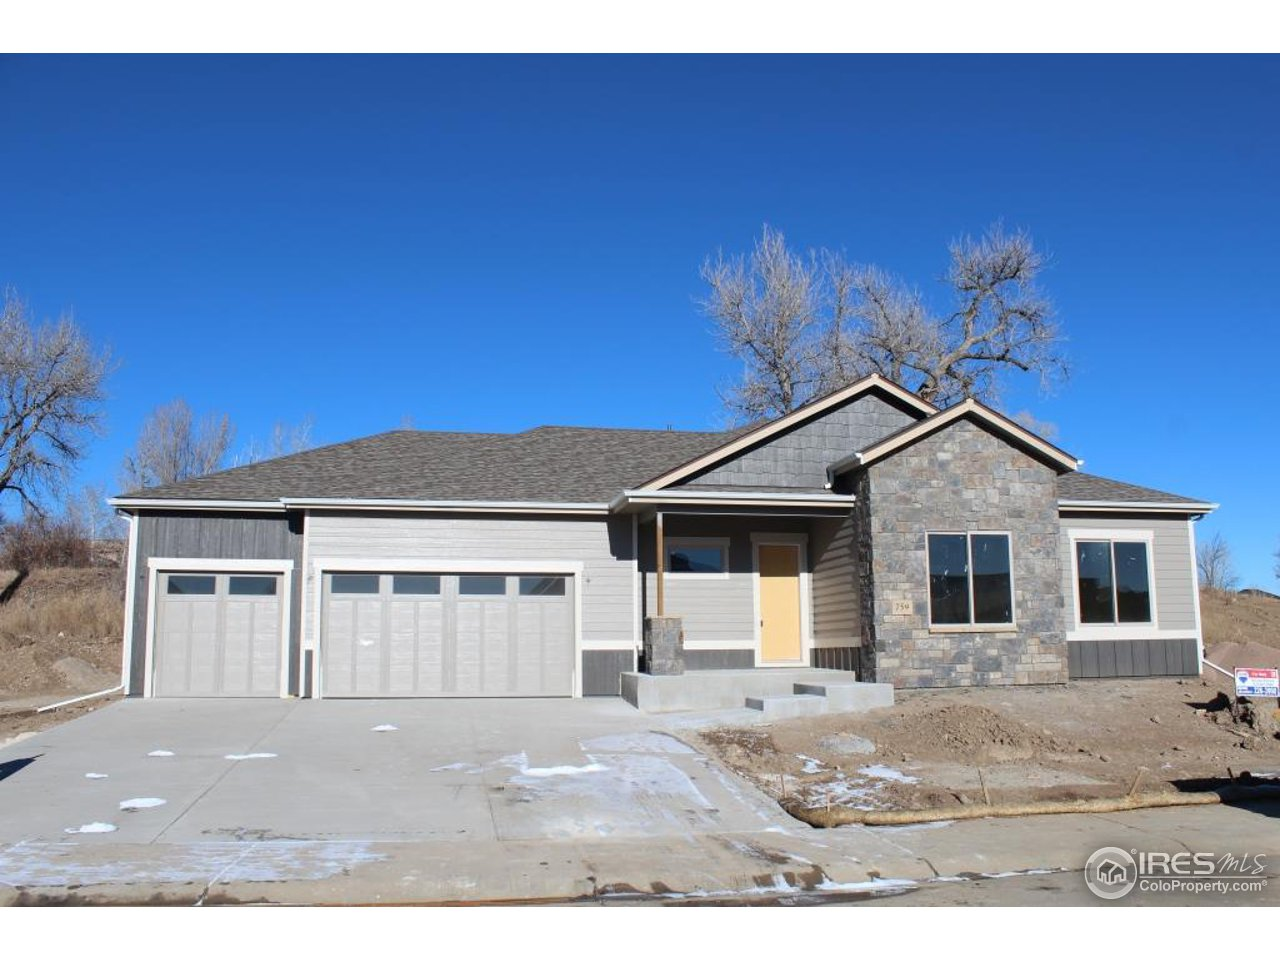 Loveland CO Real Estate for sale 600000 - 800000